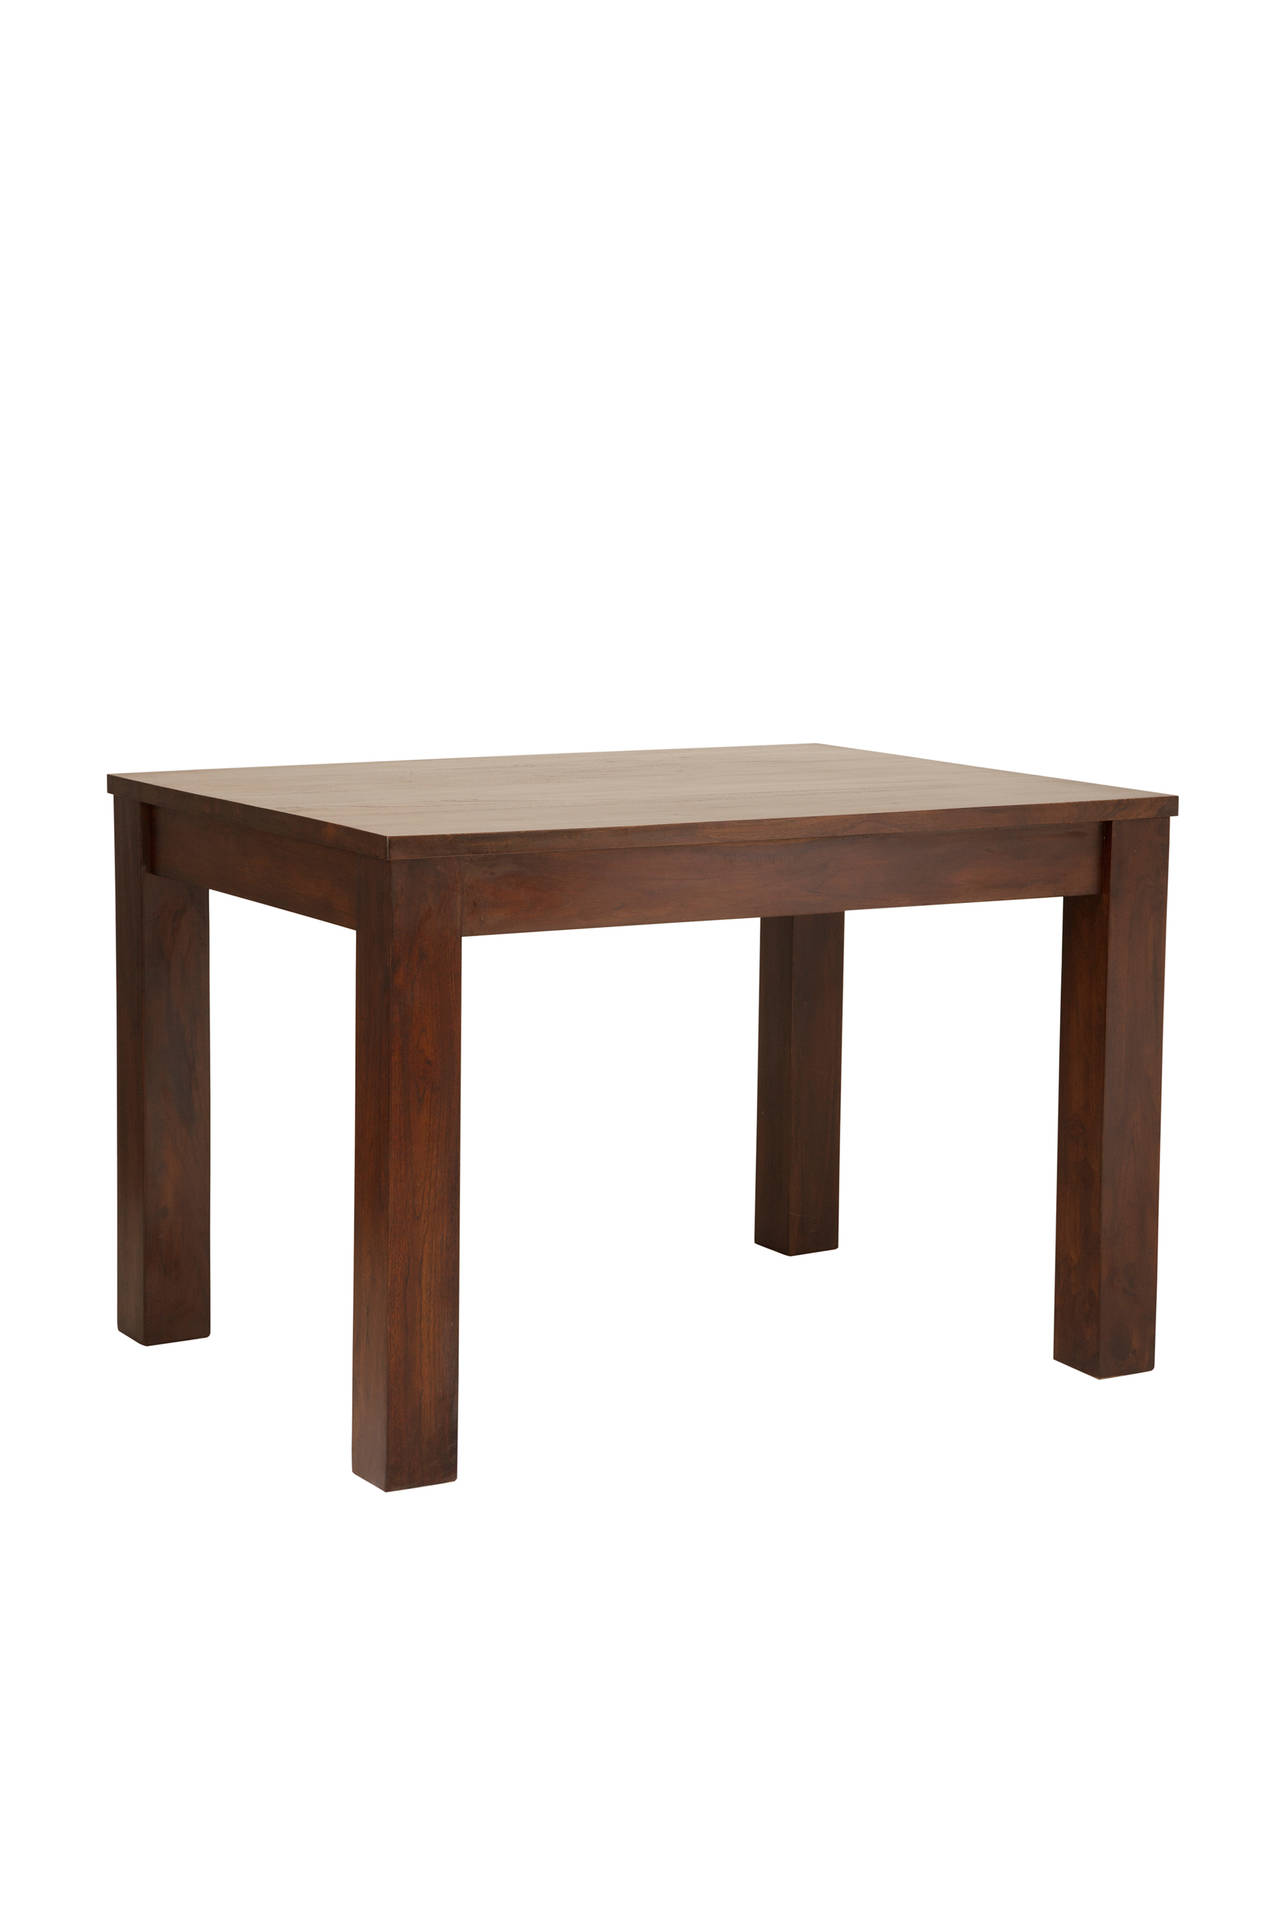 STRAIGHT DINING TABLE 120